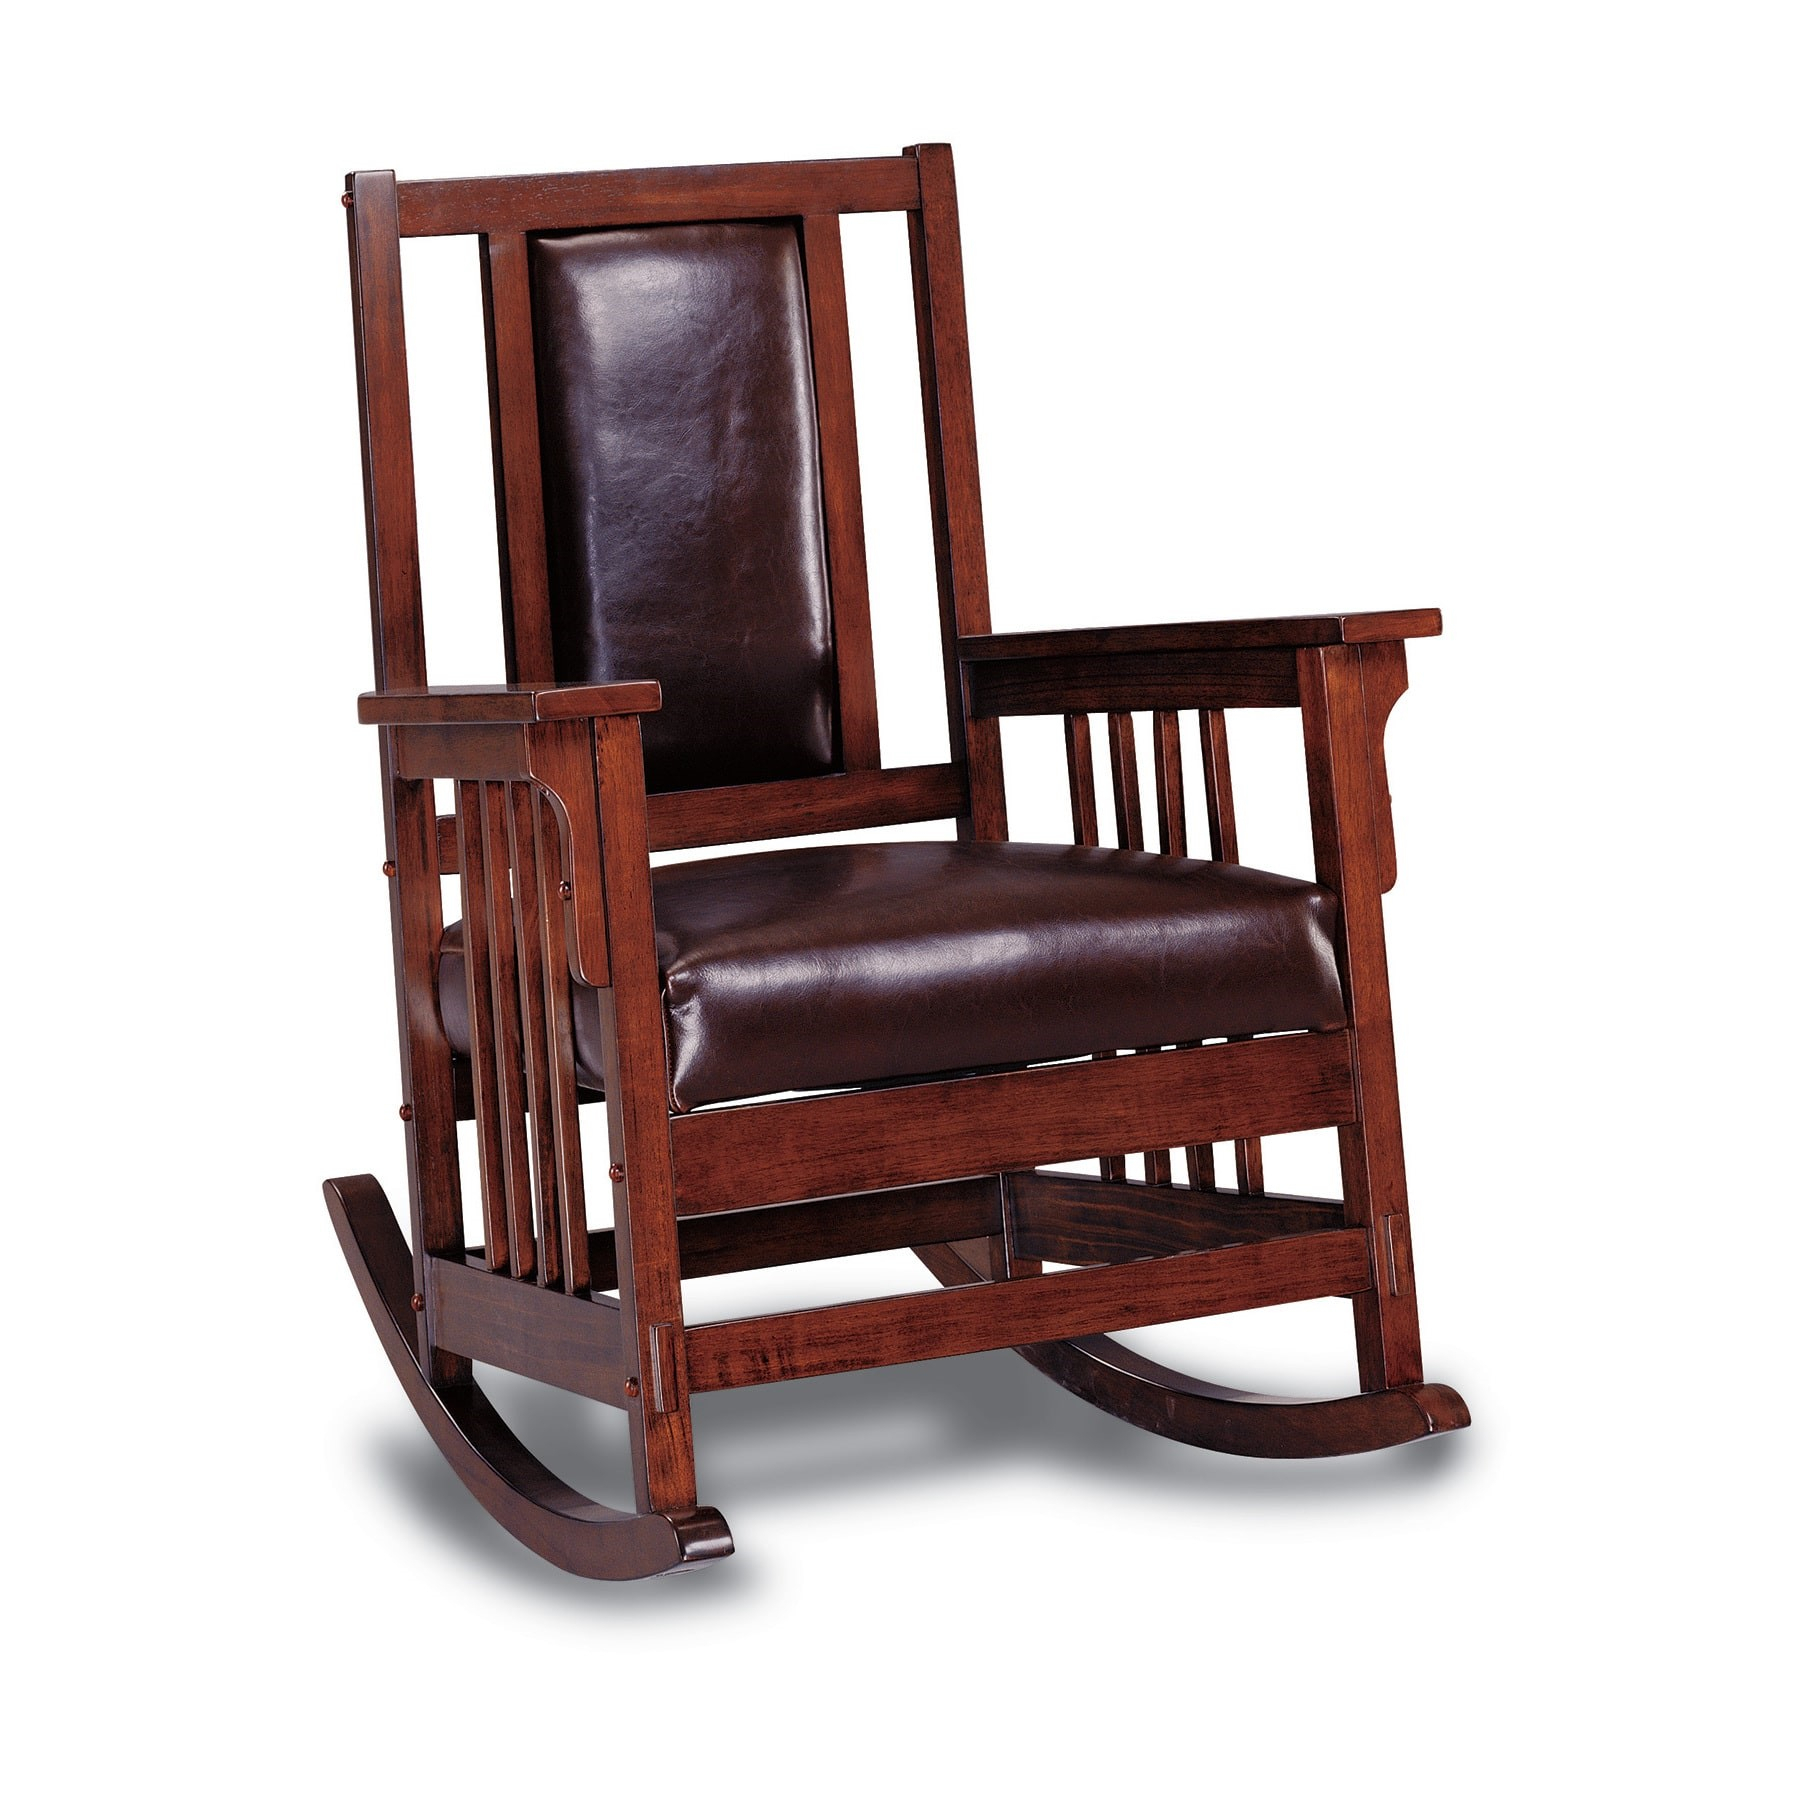 Coaster Company Indoor Rocking Chair; Tobacco Regarding Tobacco Brown Kids Rocking Chairs (View 4 of 20)